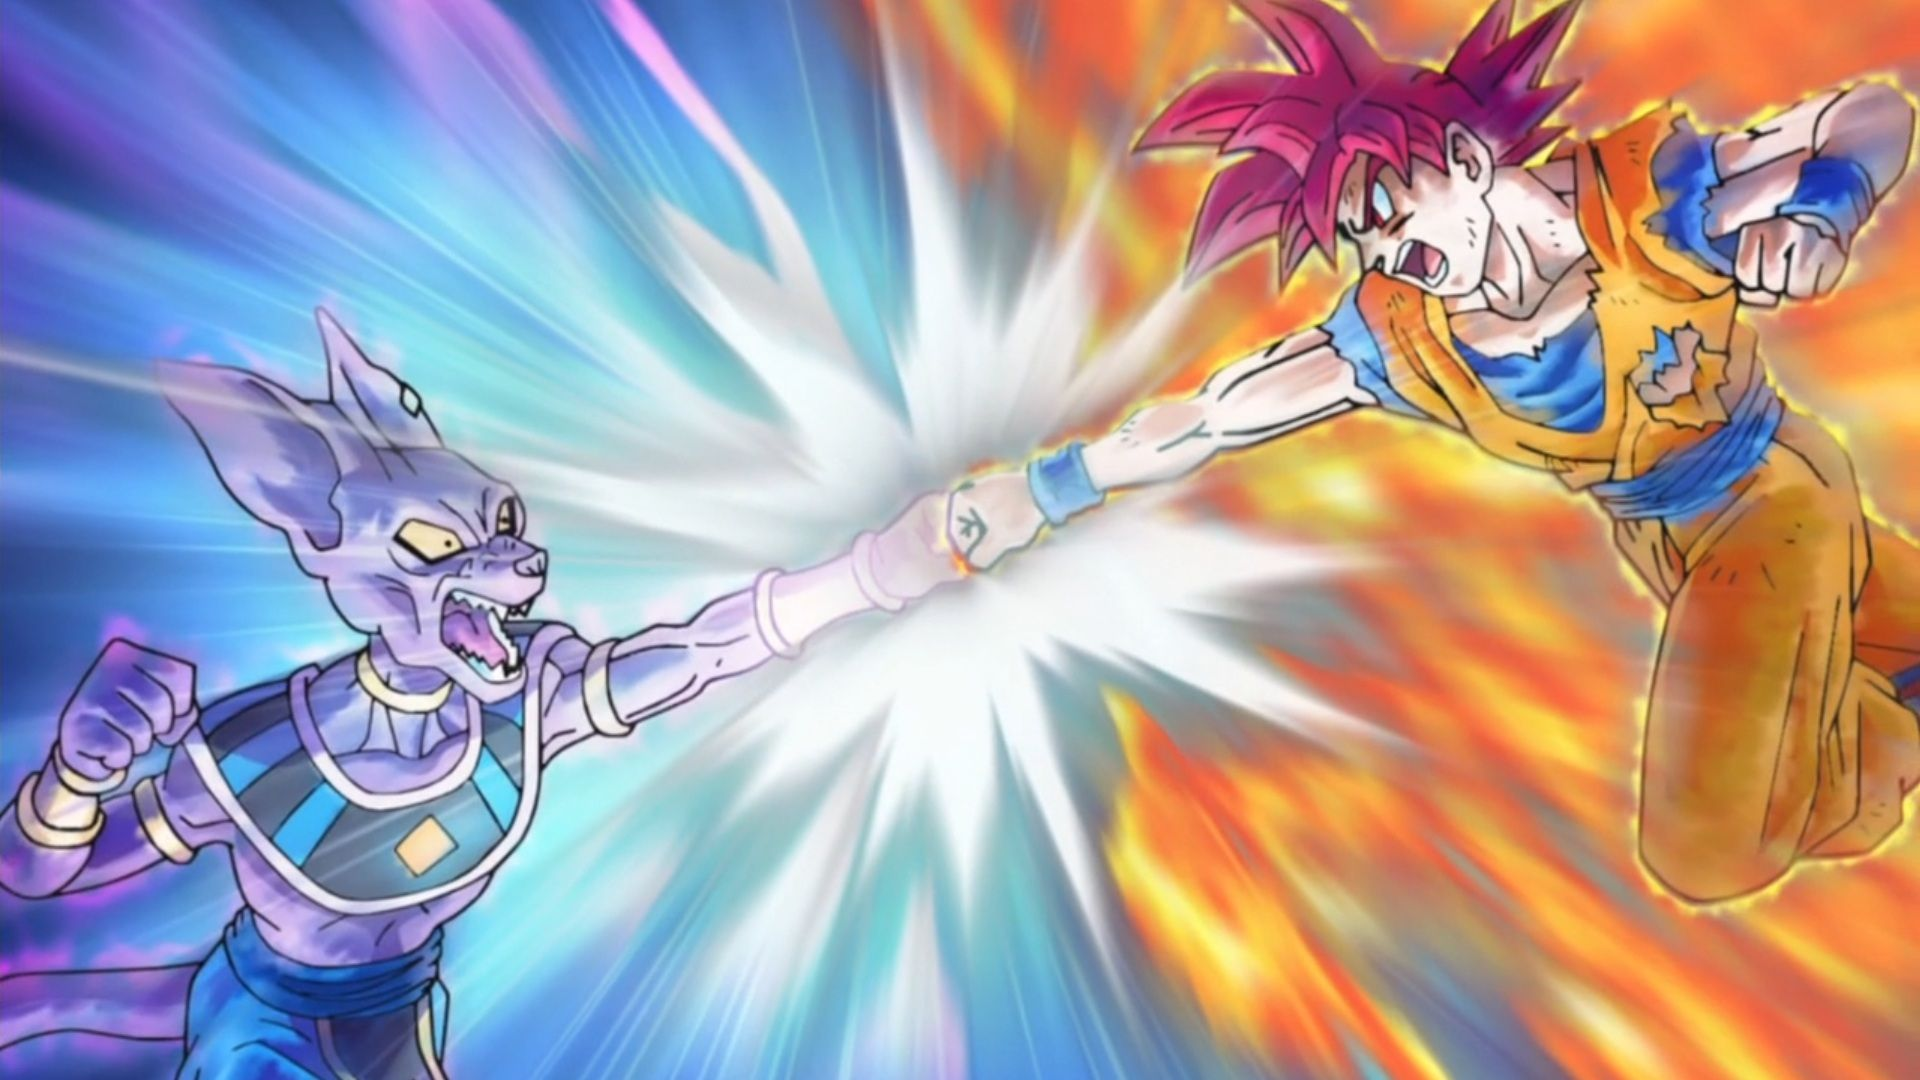 Goku Vs Beerus Wallpaper Posted By Ethan Peltier